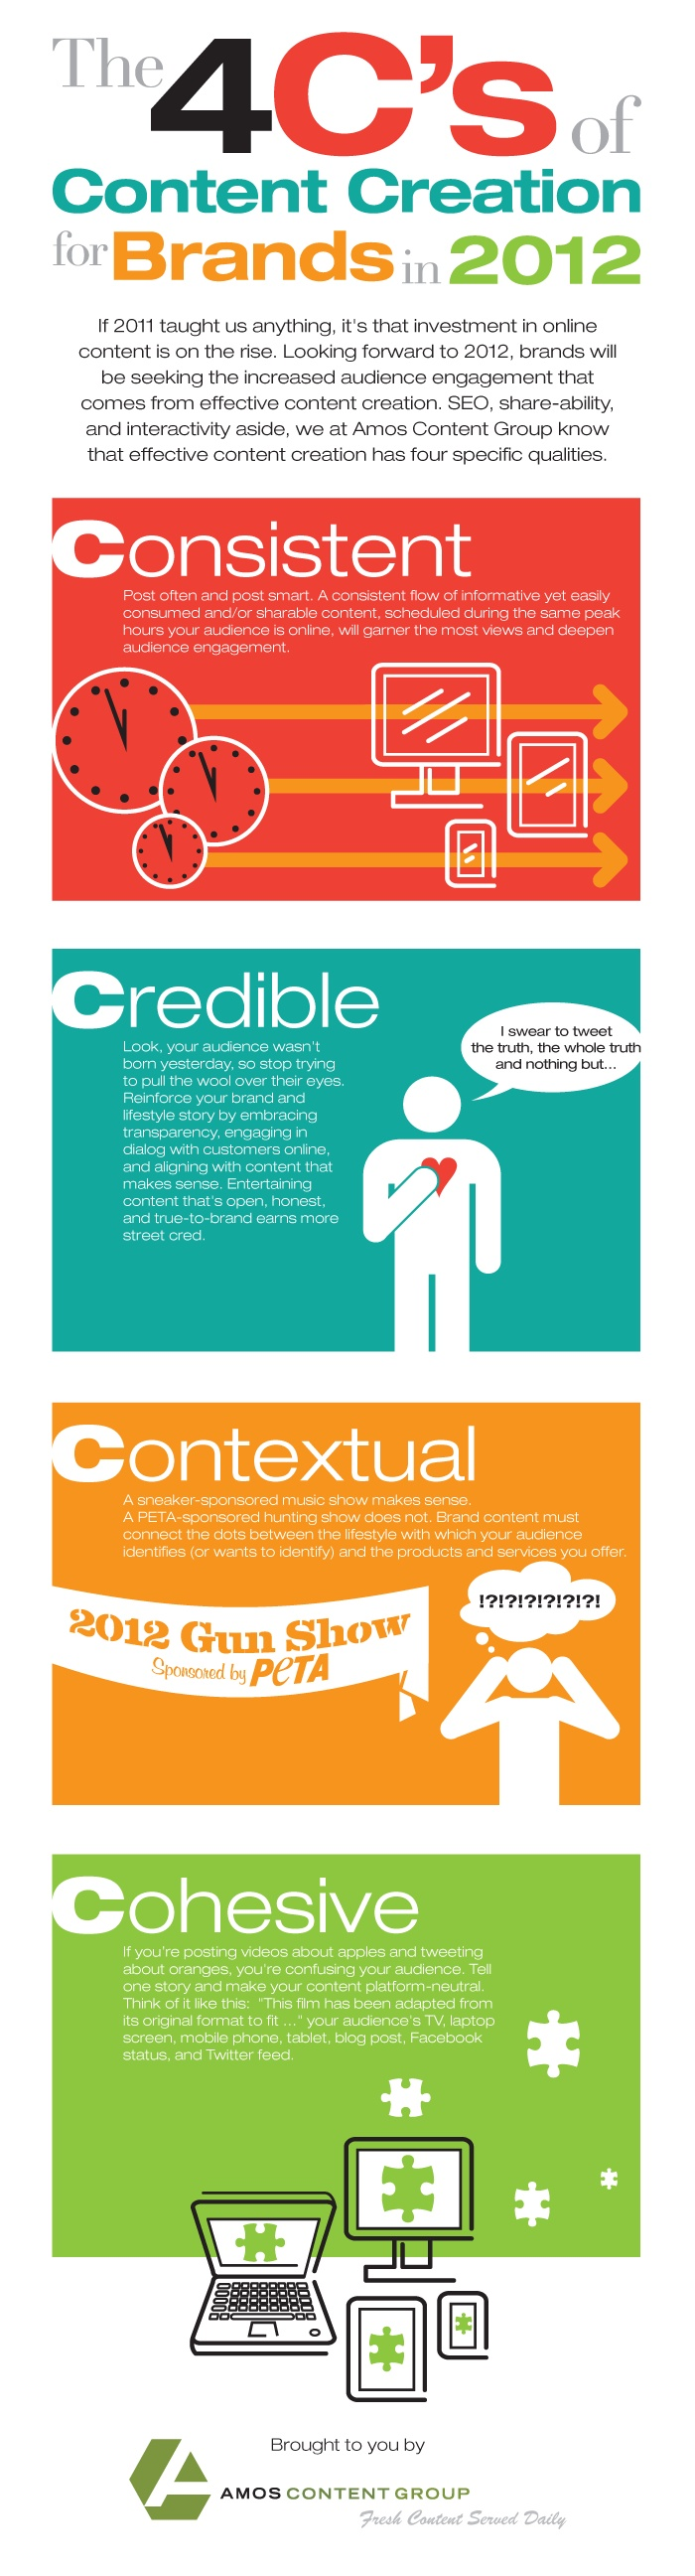 The 4 Cs of #Content Creation for #Brands in 2012: Social Media, Brand, Infographic, Socialmedia, Content Marketing